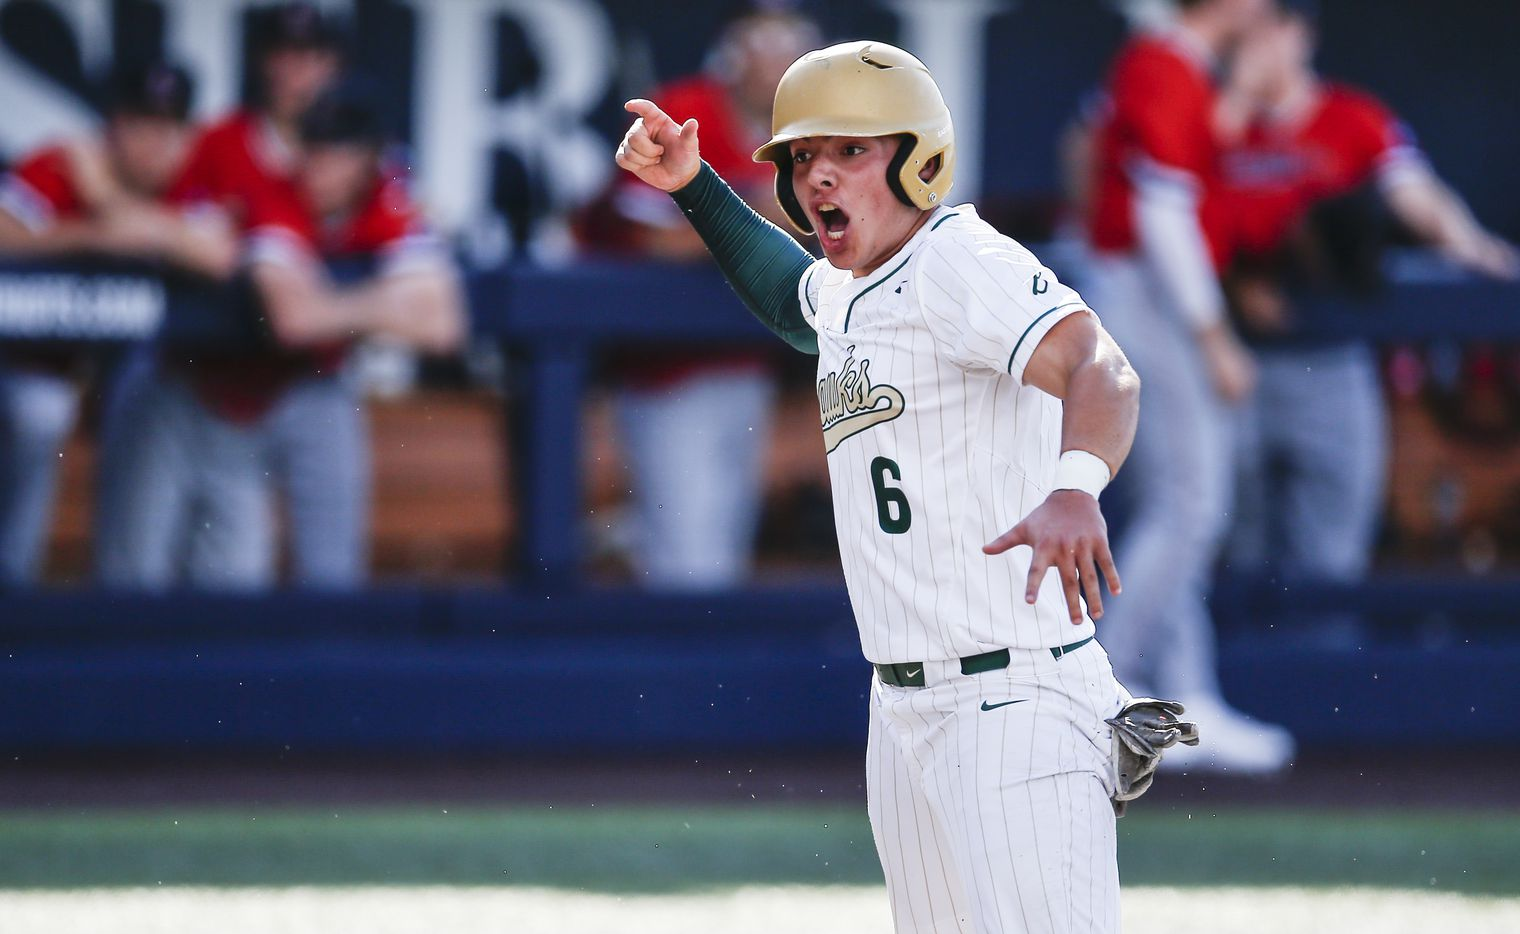 Birdville's Bynum Martinez (6) celebrates scoring a run during the second inning of a high school Class 5A Region I quarterfinal series baseball game against Mansfield Legacy at Dallas Baptist University, Thursday, May 20, 2021. (Brandon Wade/Special Contributor)